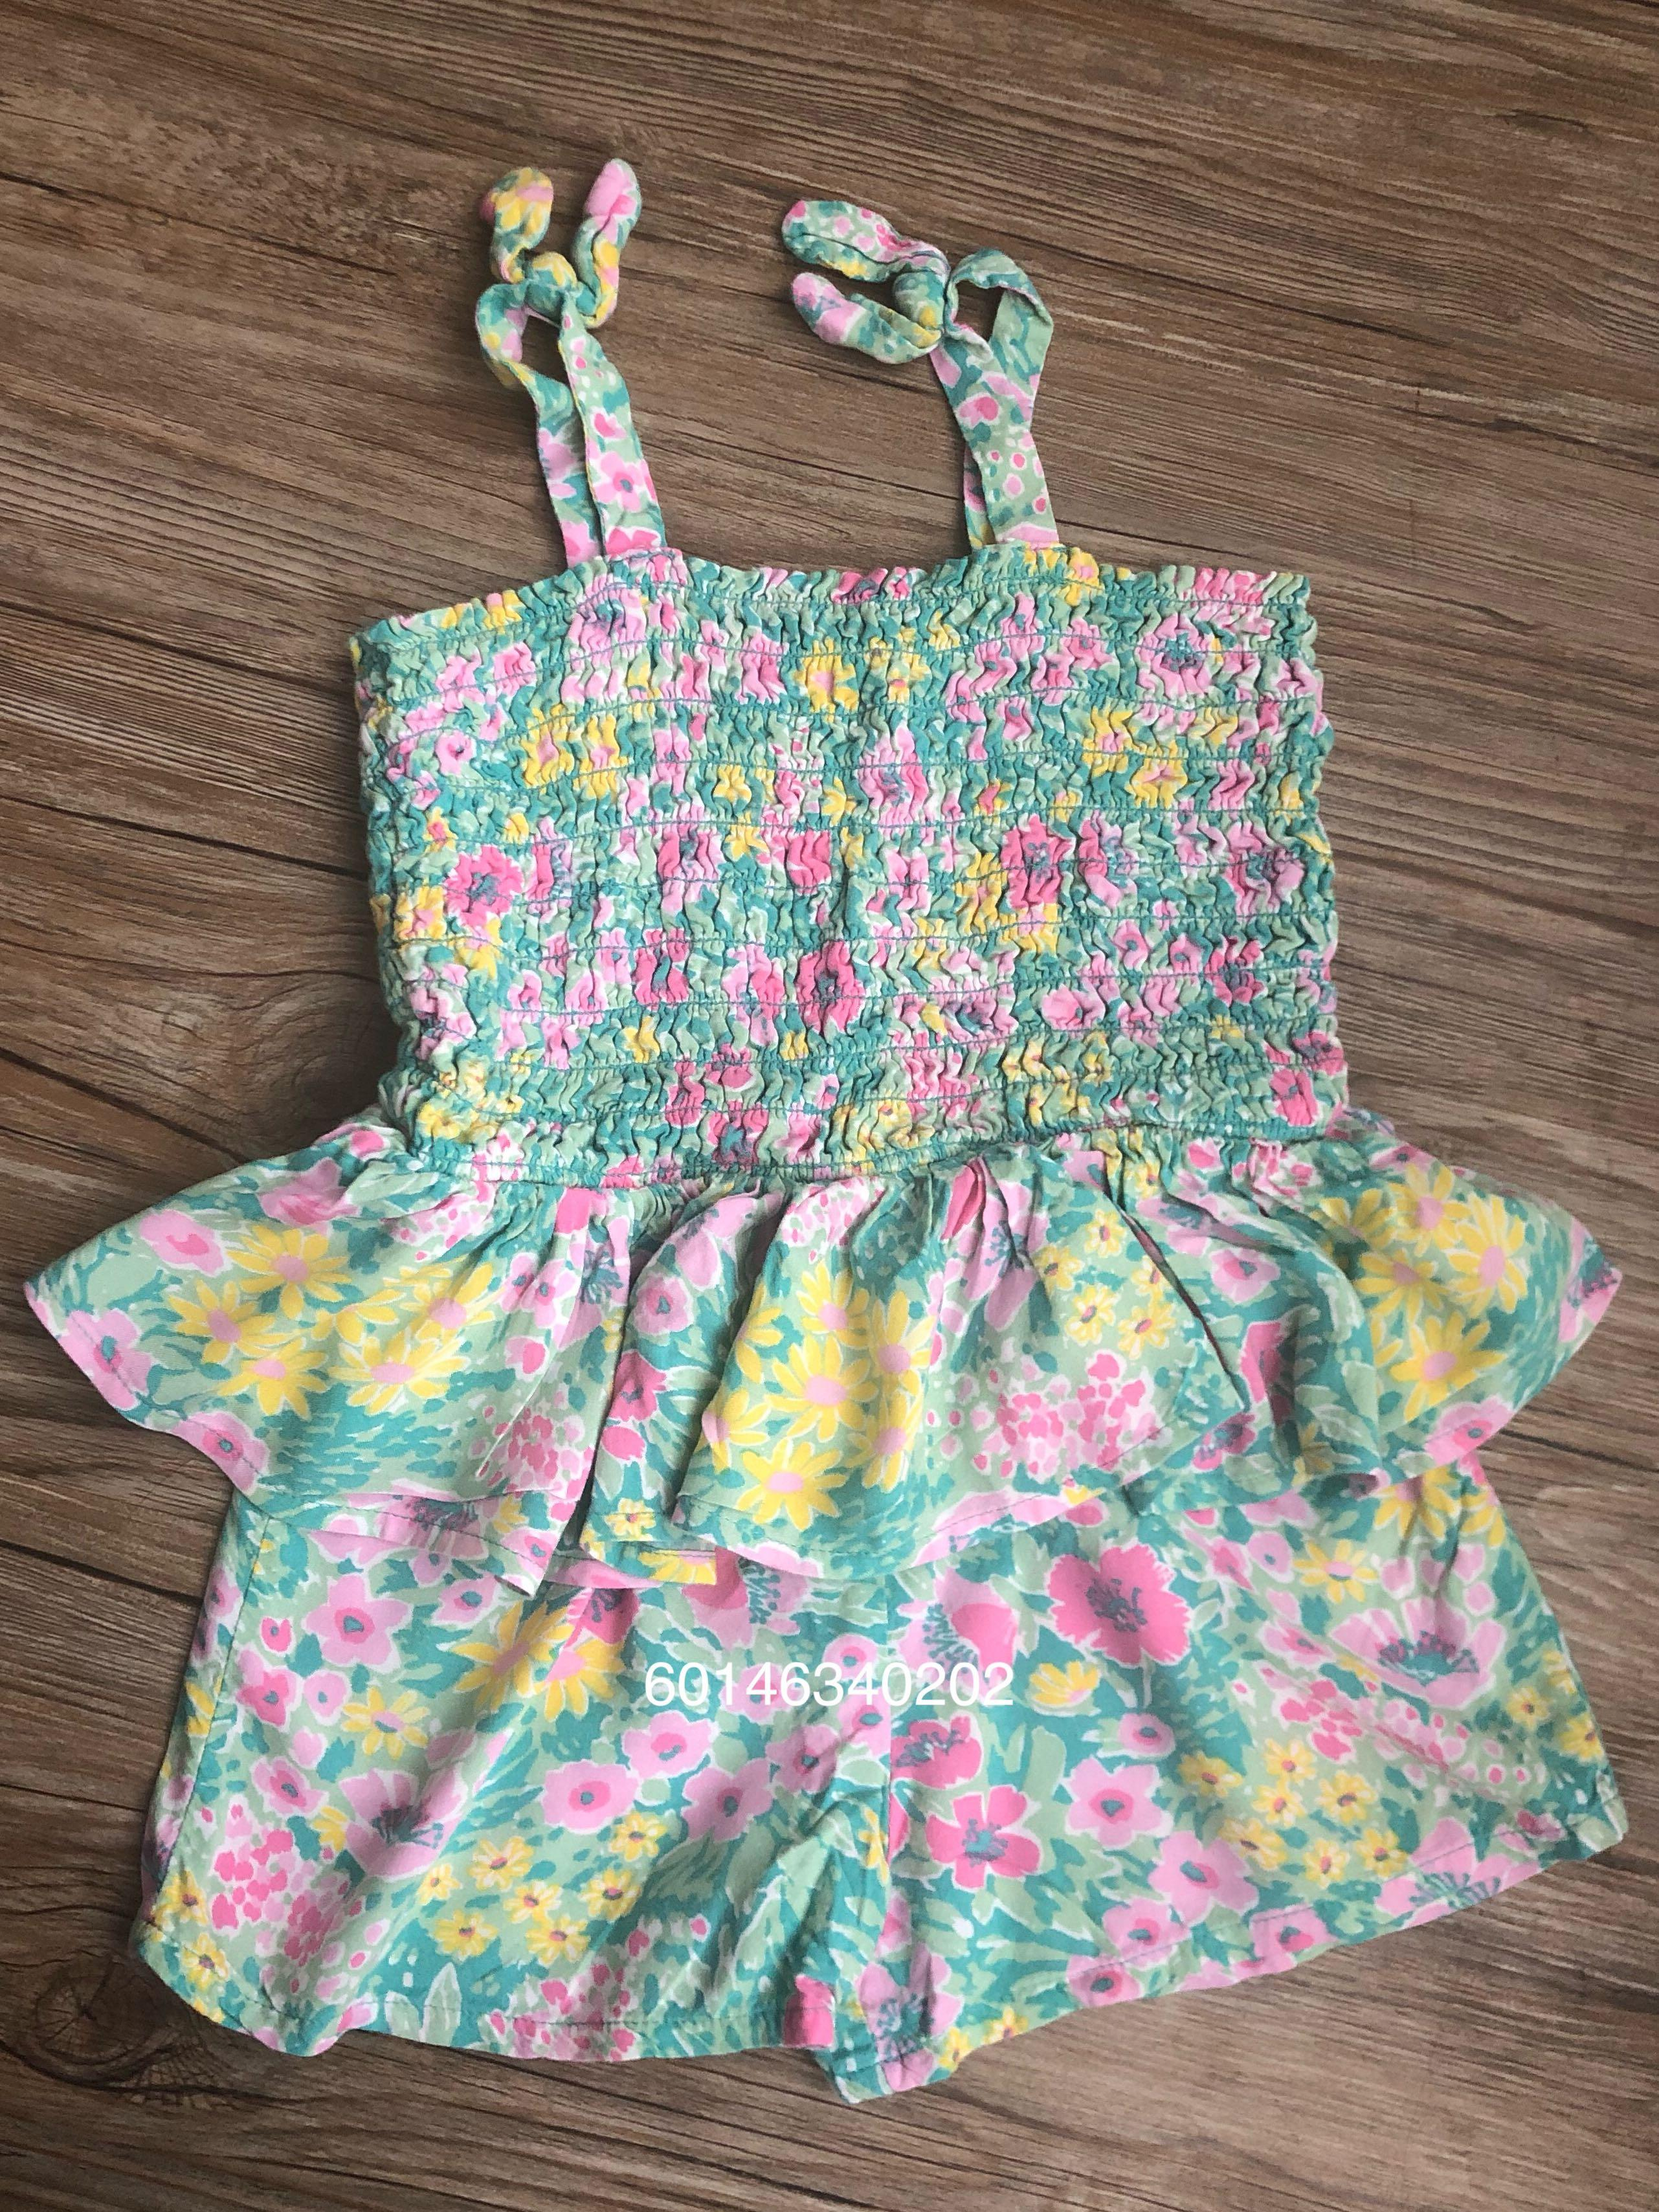 Preloved Playsuit Size 4T